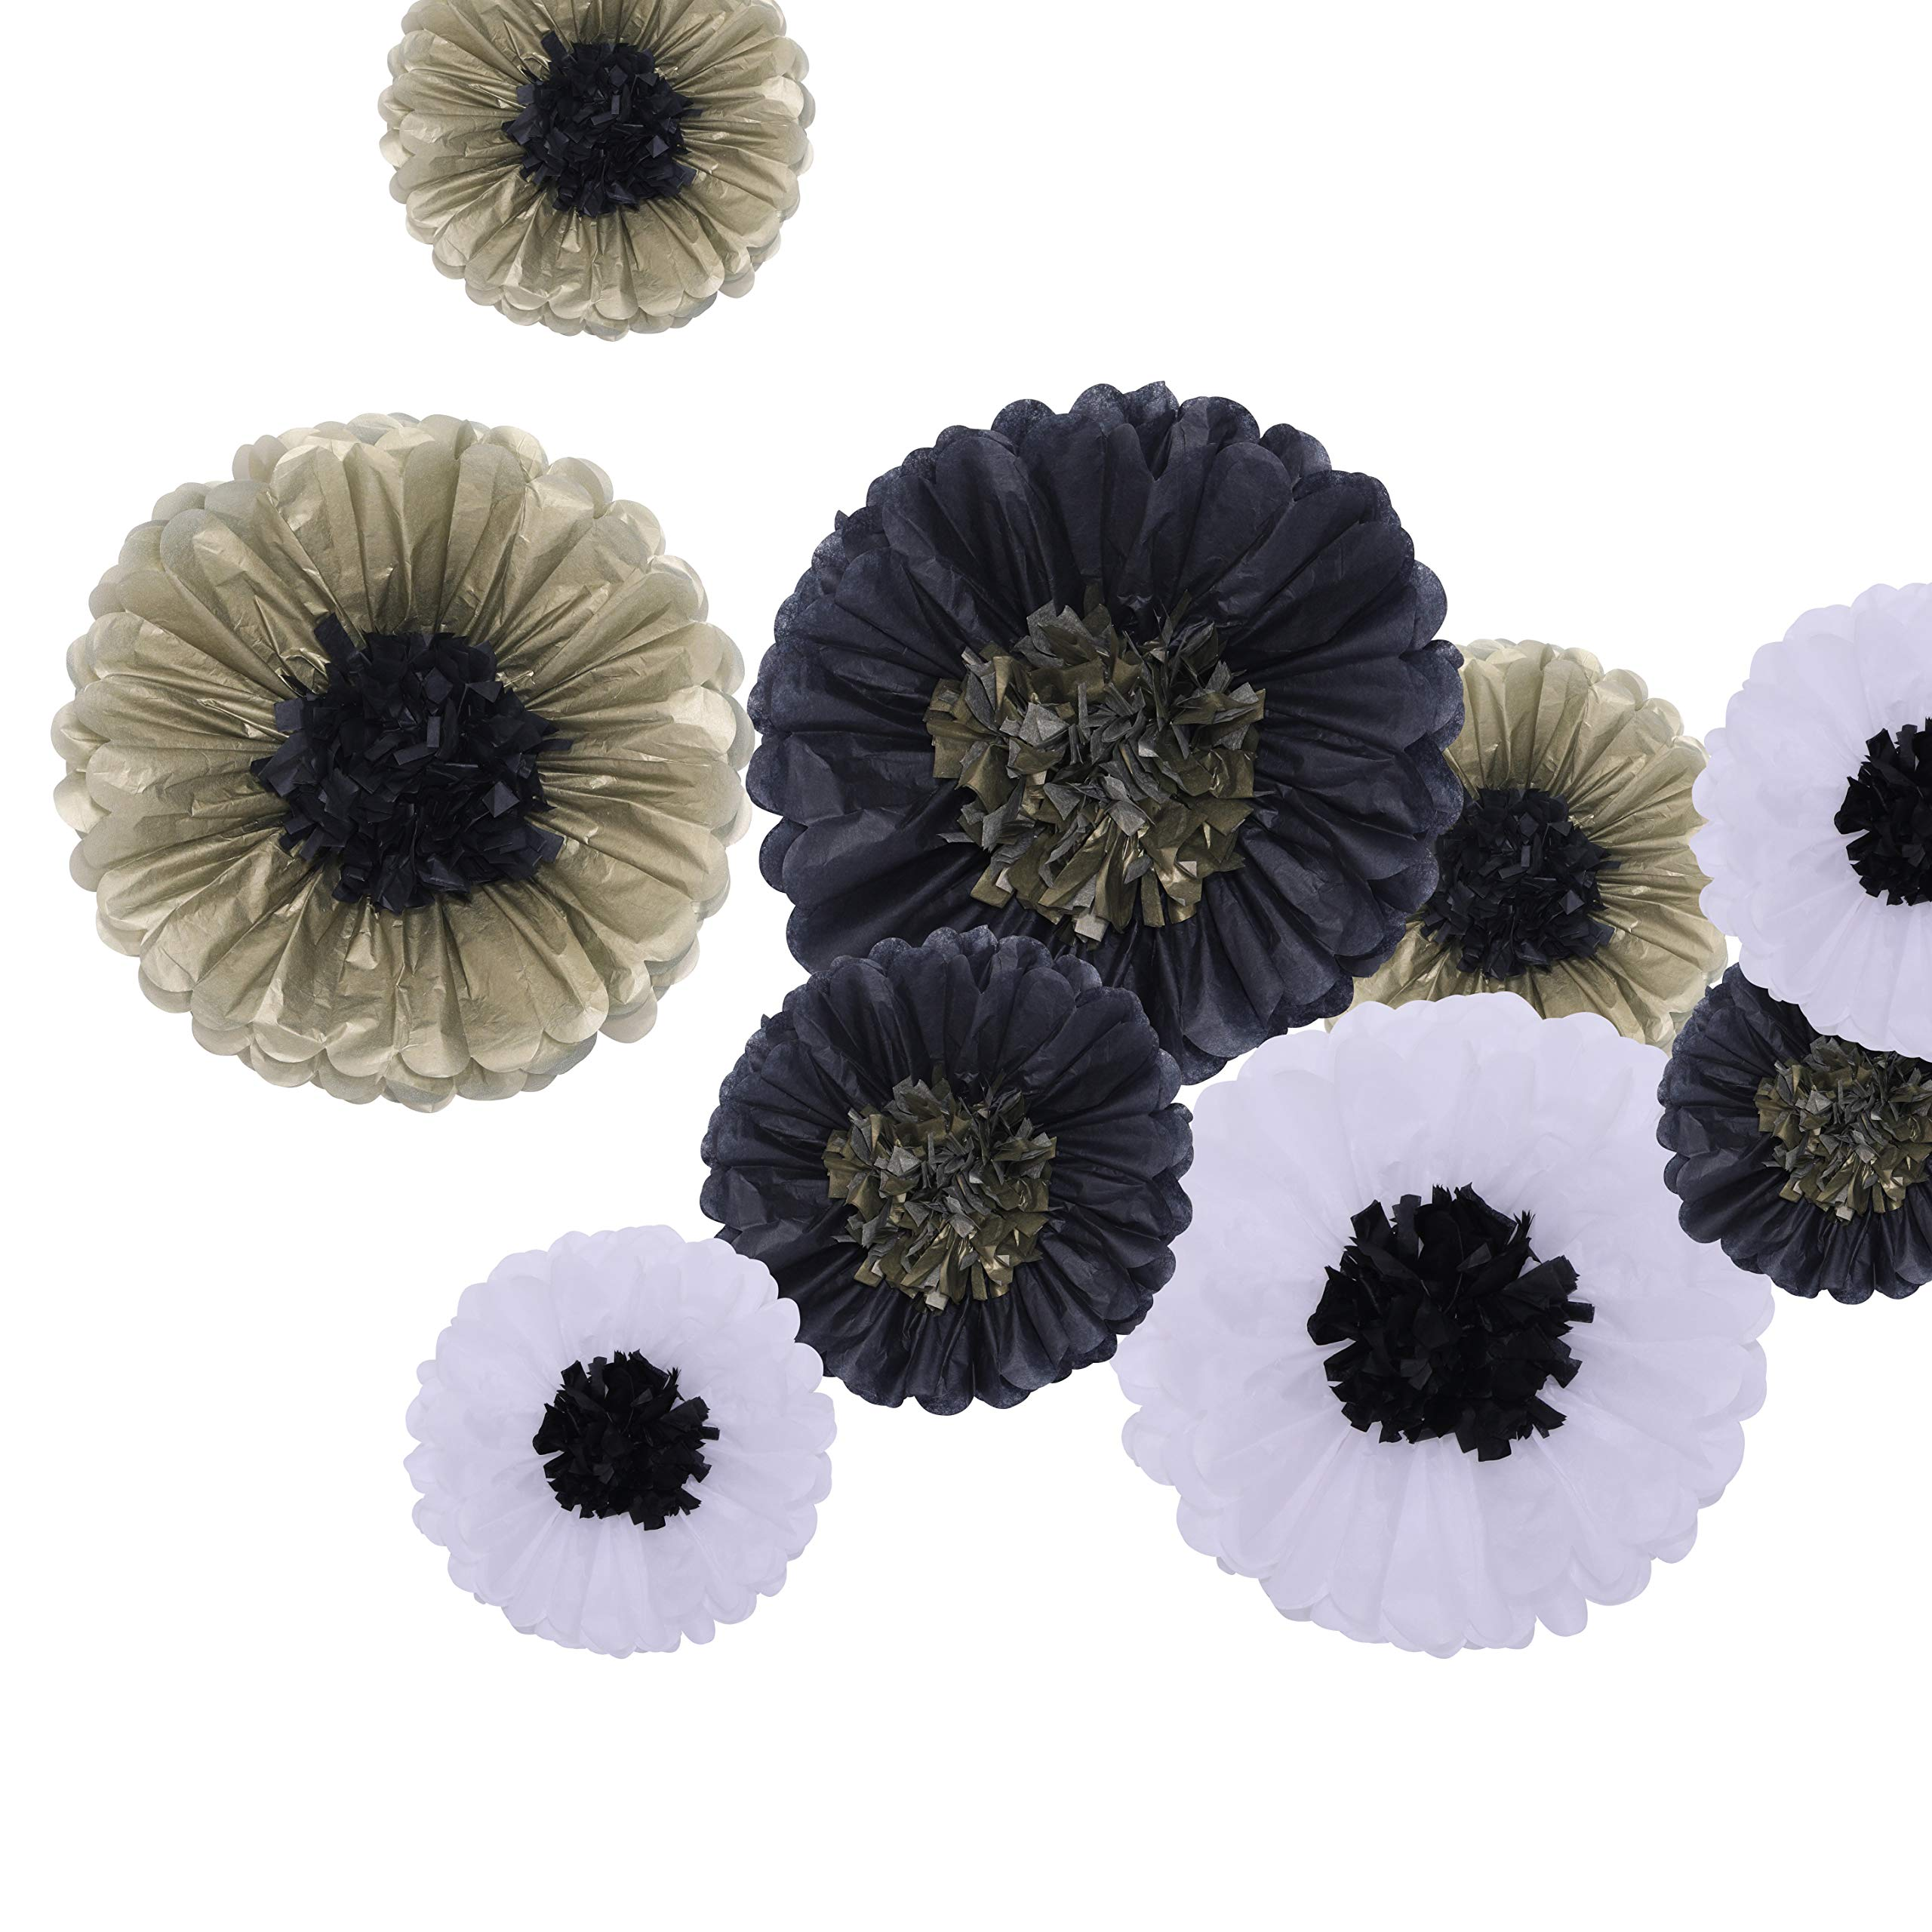 Fonder Mols Tissue Paper Flowers DIY Kit - Make Paper Flowers Backdrop Centerpiece for Wedding Nursery Room Wall Backdrop Decorations (Pack of 9, Black Gold White)